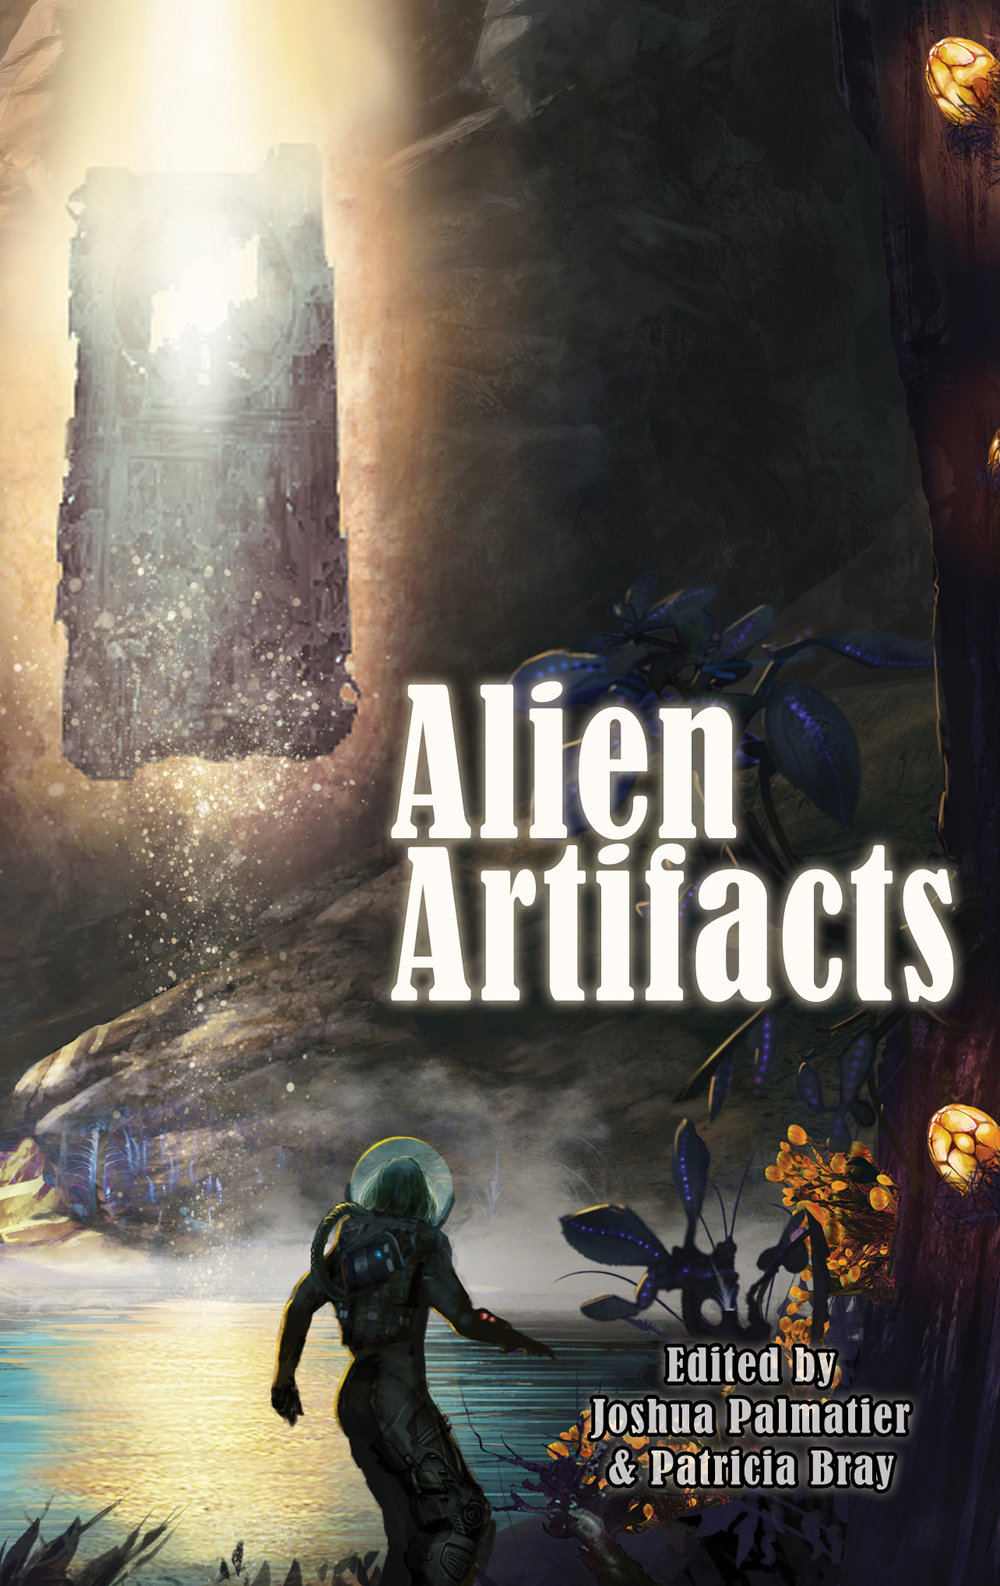 Alien Artifacts, 2016